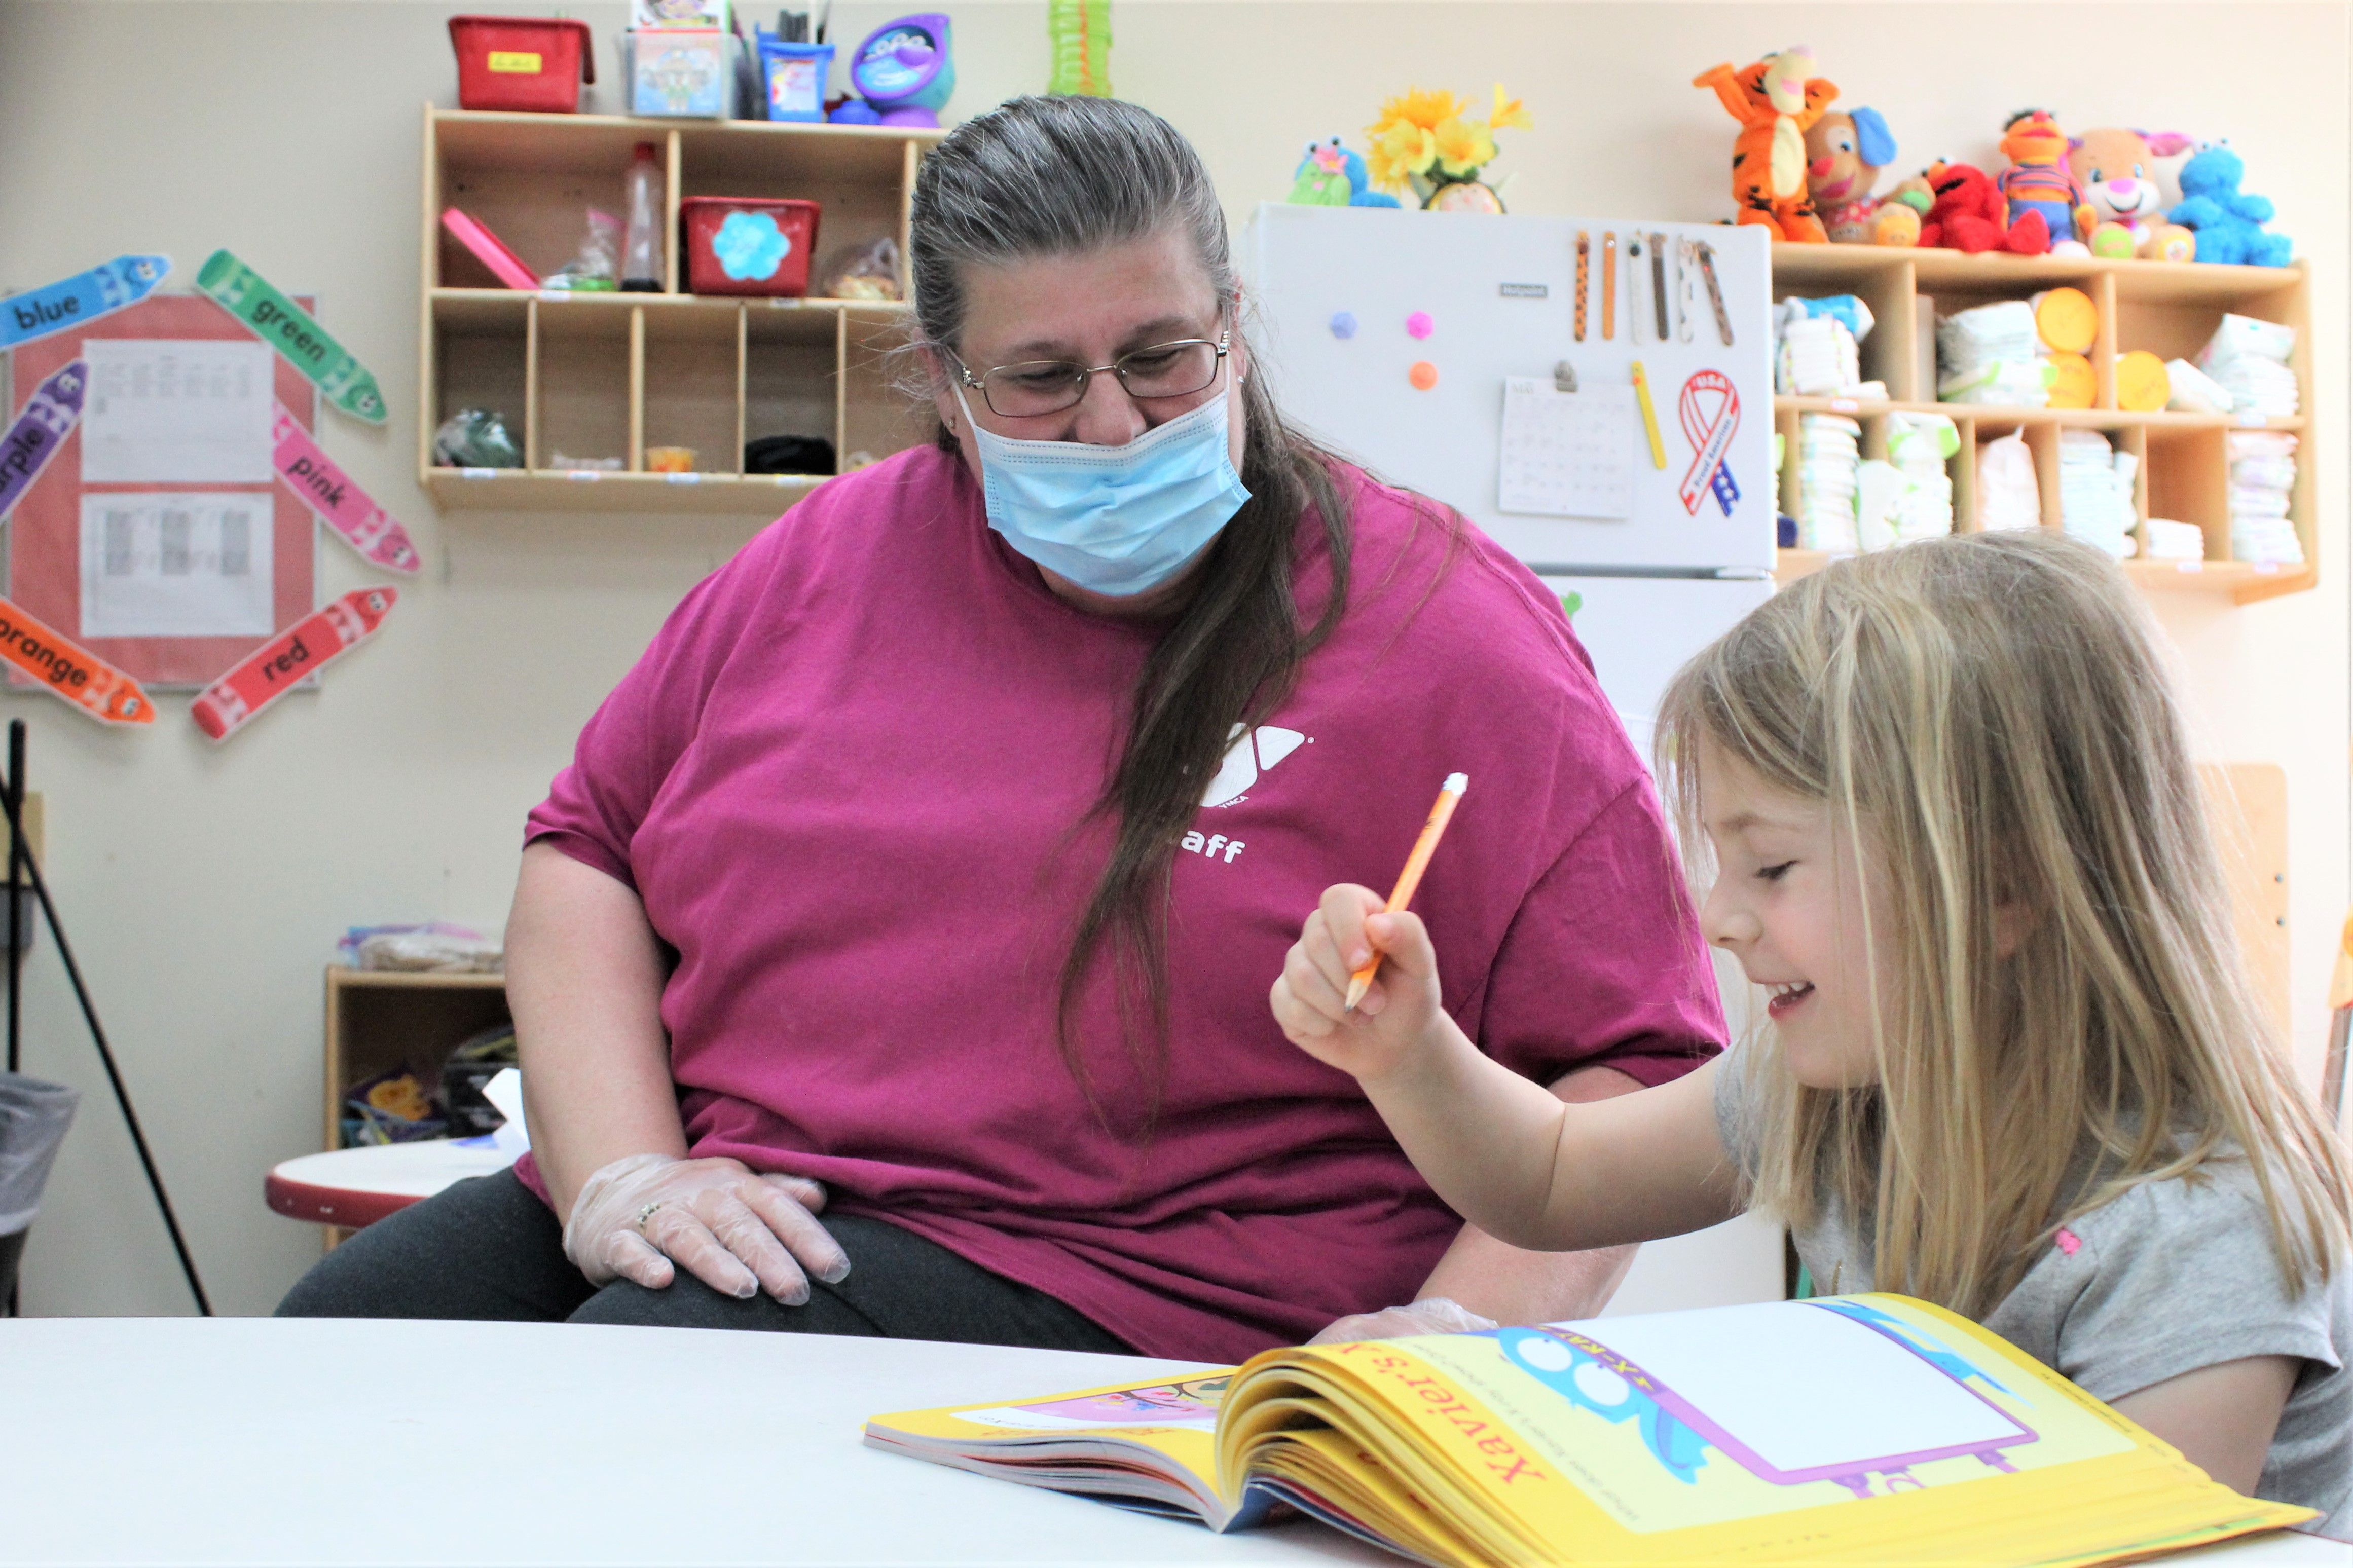 YMCA childcare provider Darlene Mount wears a mask and gloves to keep children safe amid the 2020 coronavirus pandemic